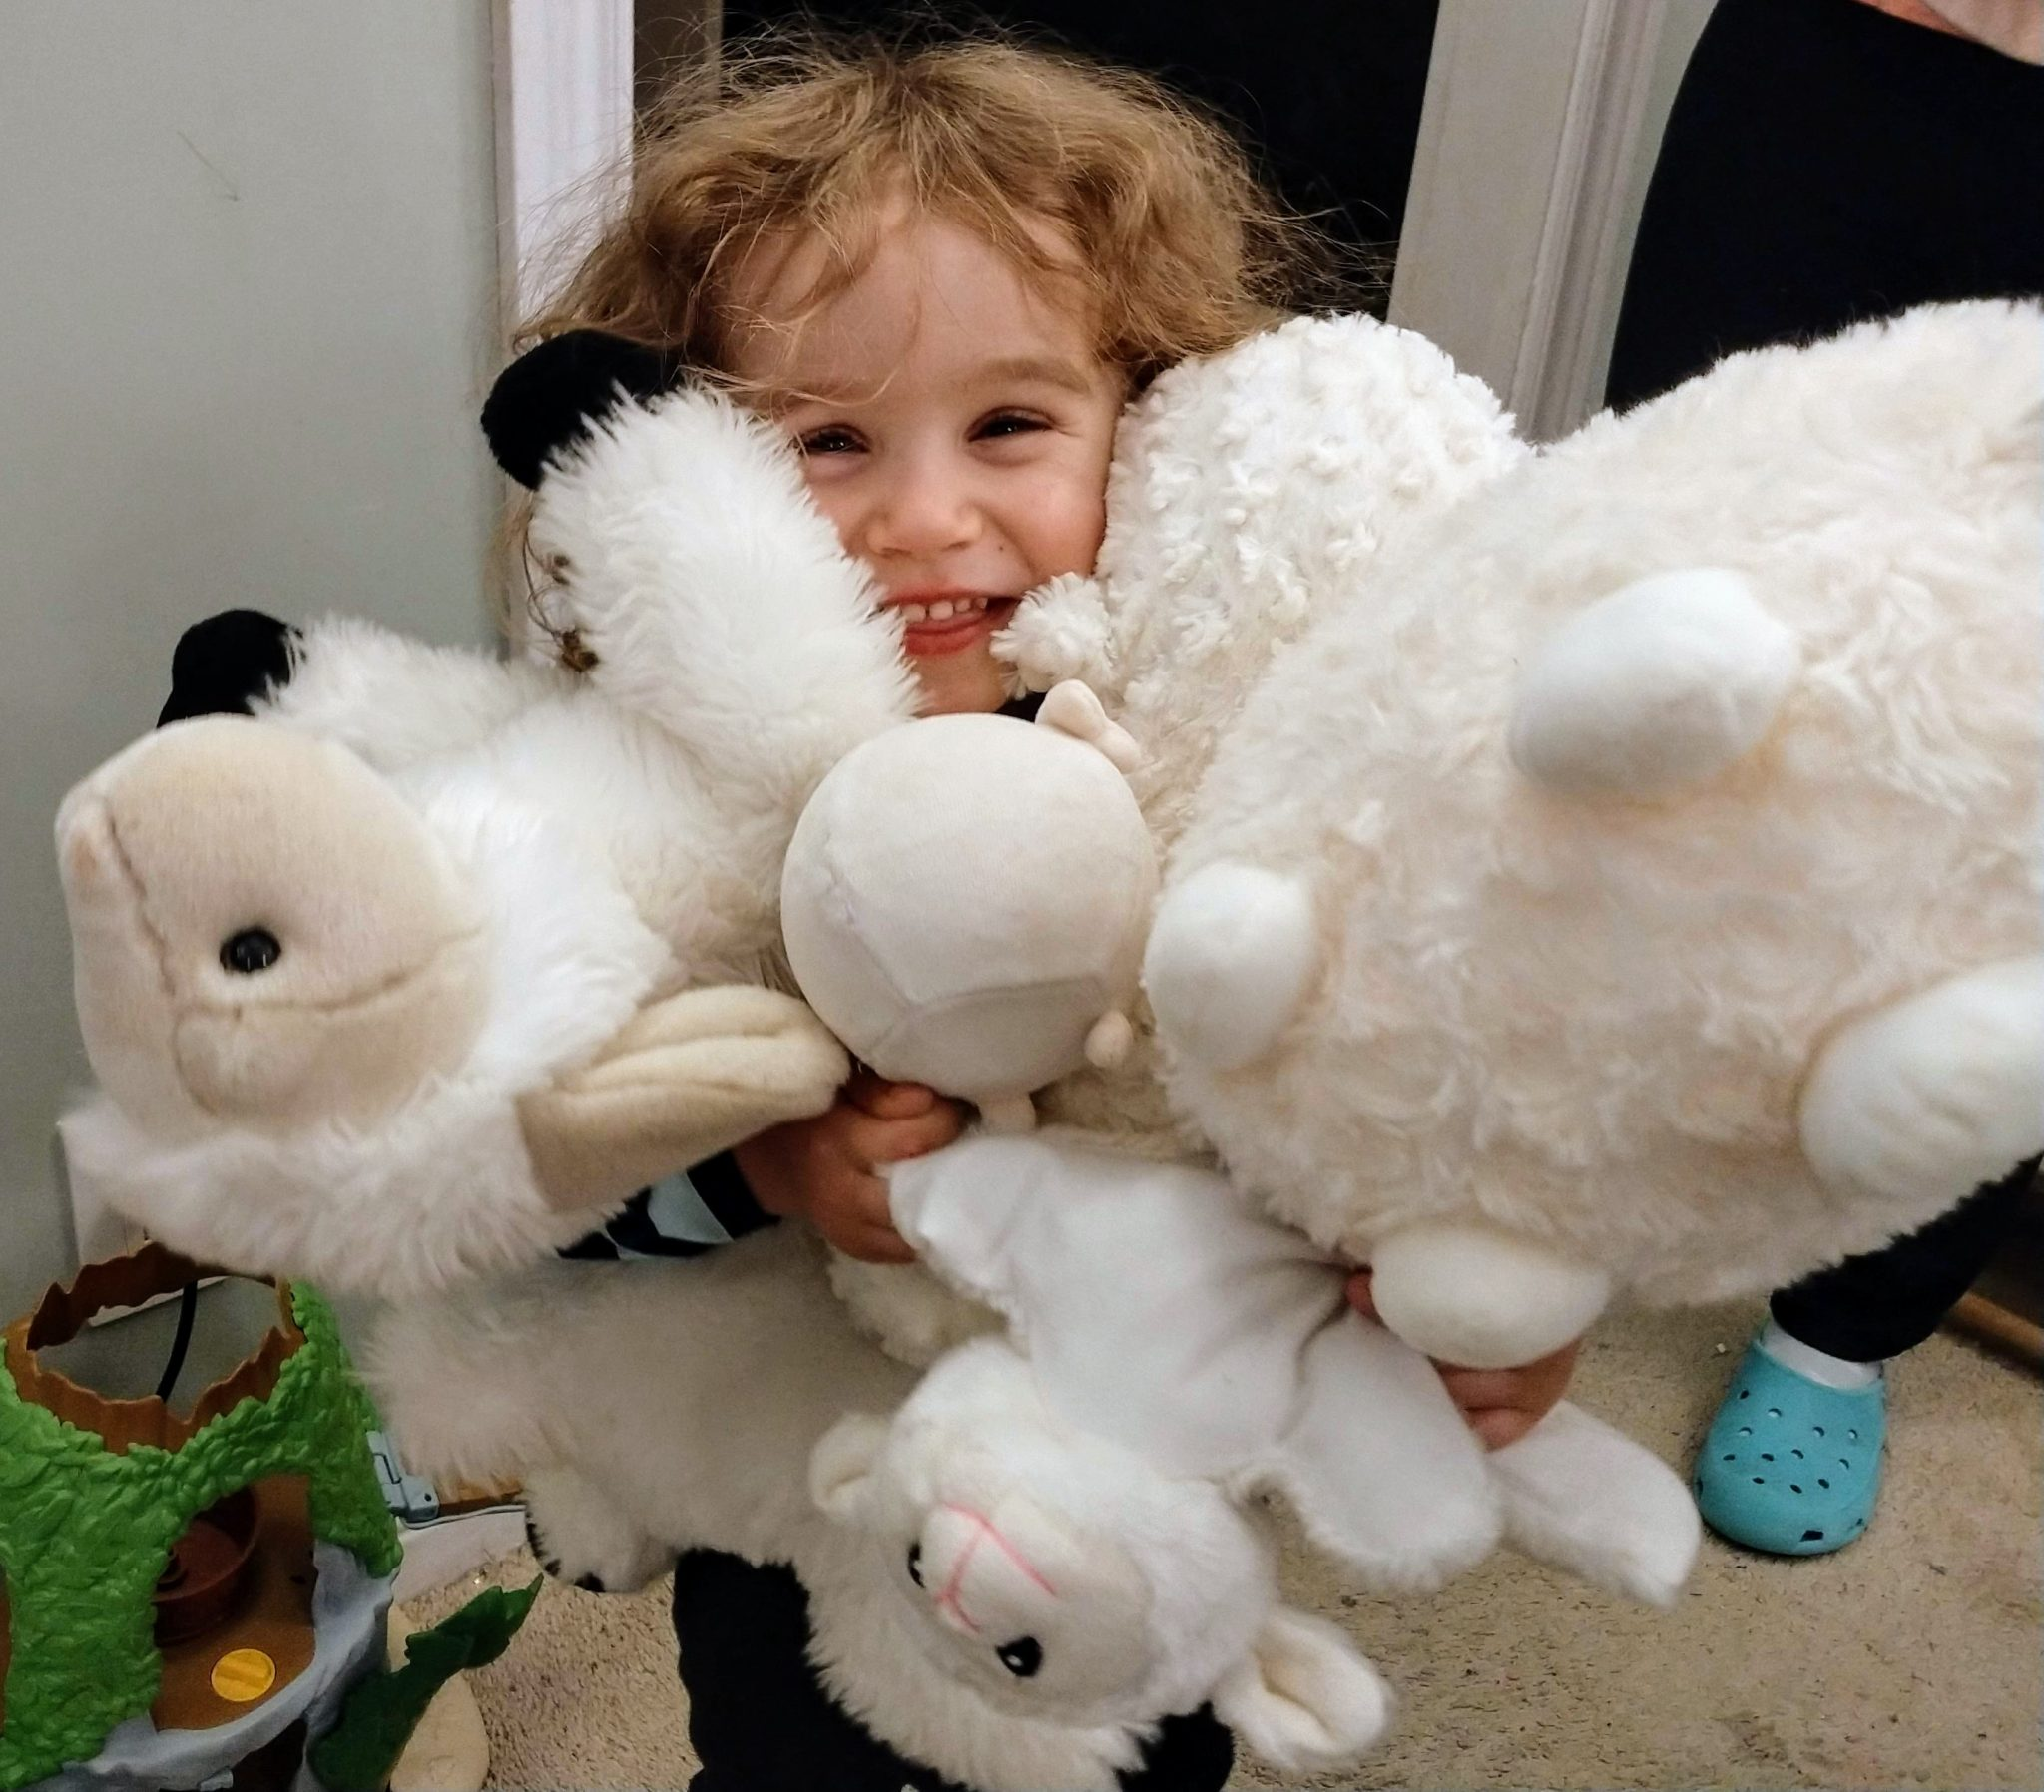 Sophie with Stuffed Animals Lambs